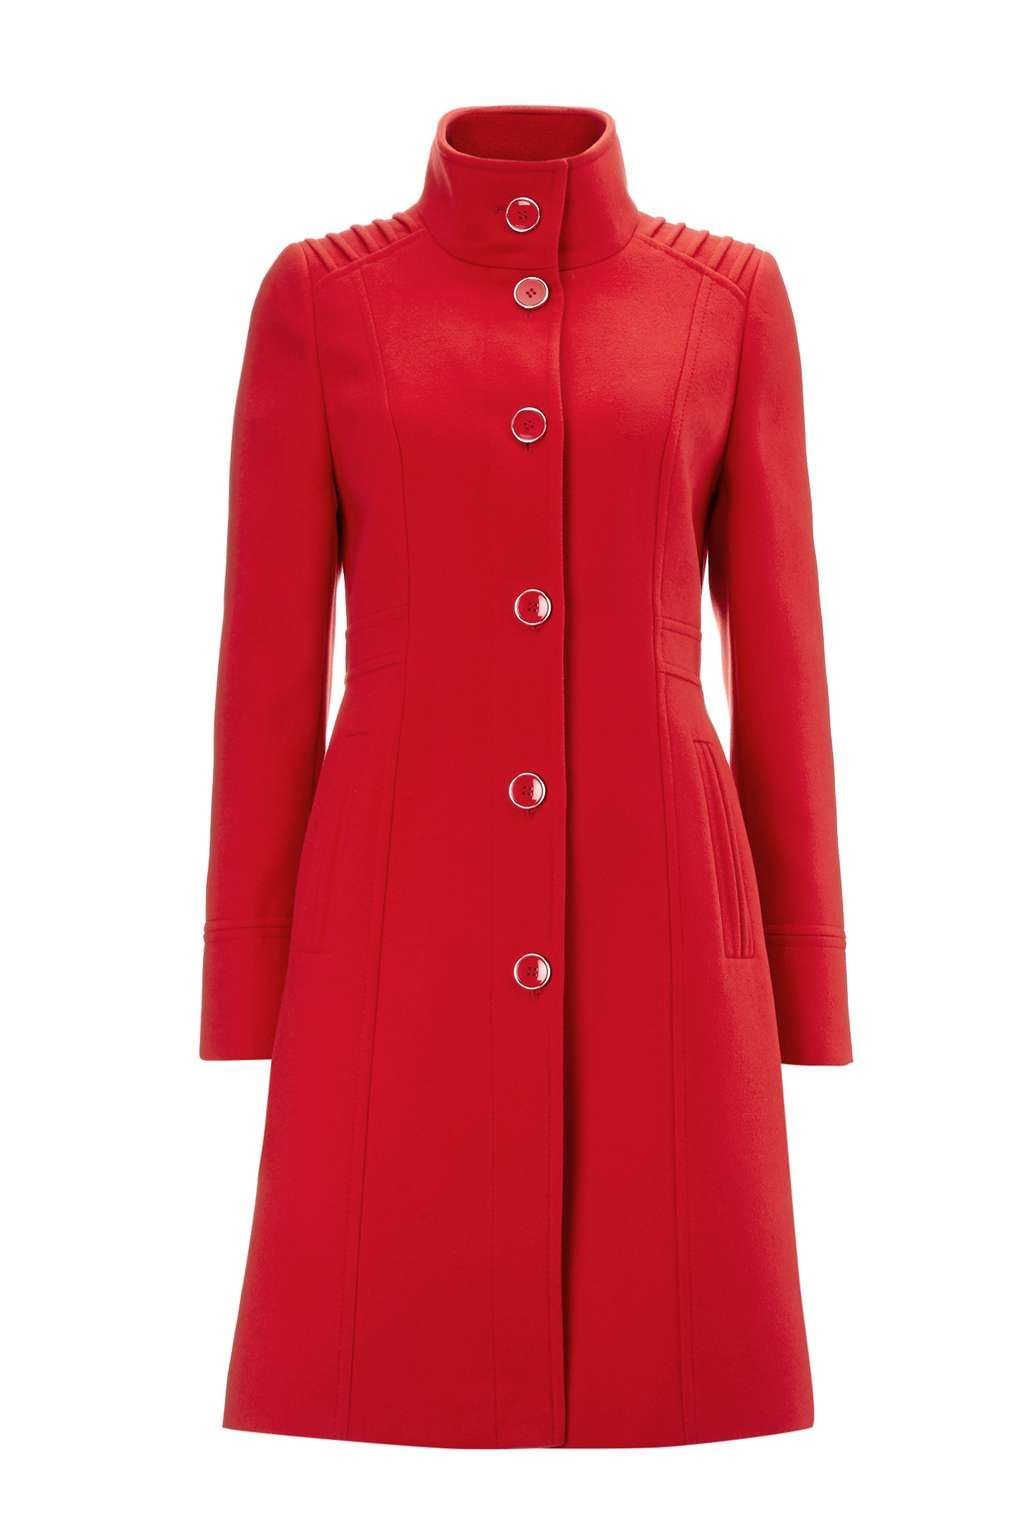 Red Funnel Coat - Coats - Clothing | Coat, Red funnel ...